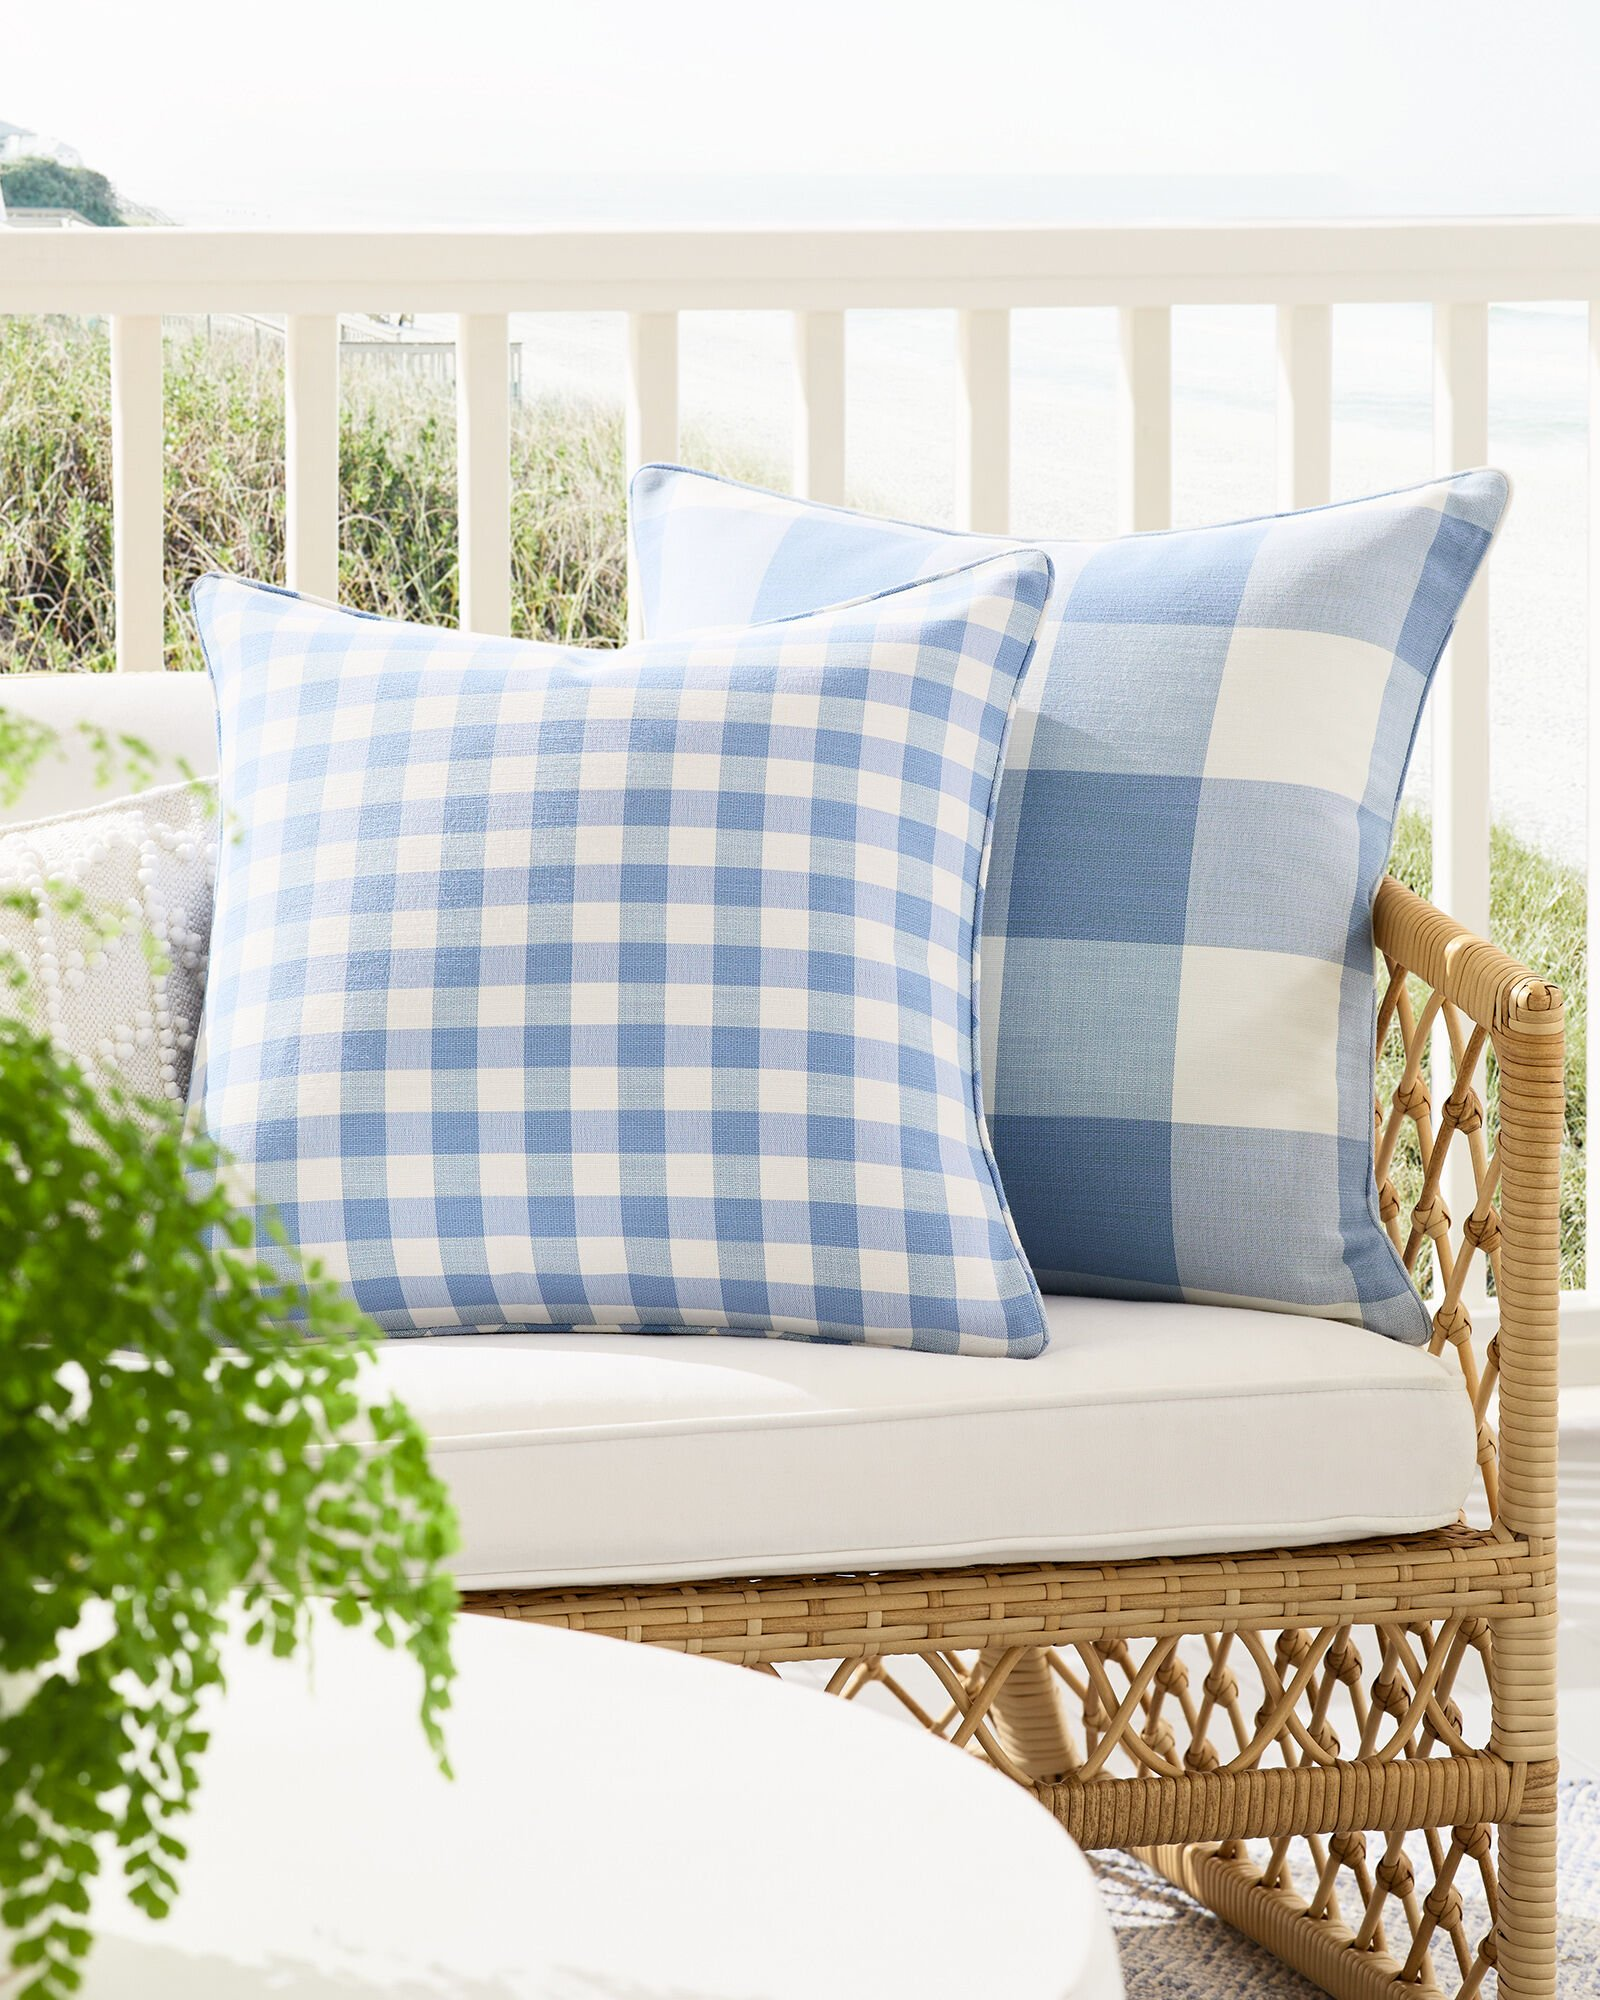 two outdoor blue and white gingham pillows on a wicker sofa with white cushion in front of a white railing